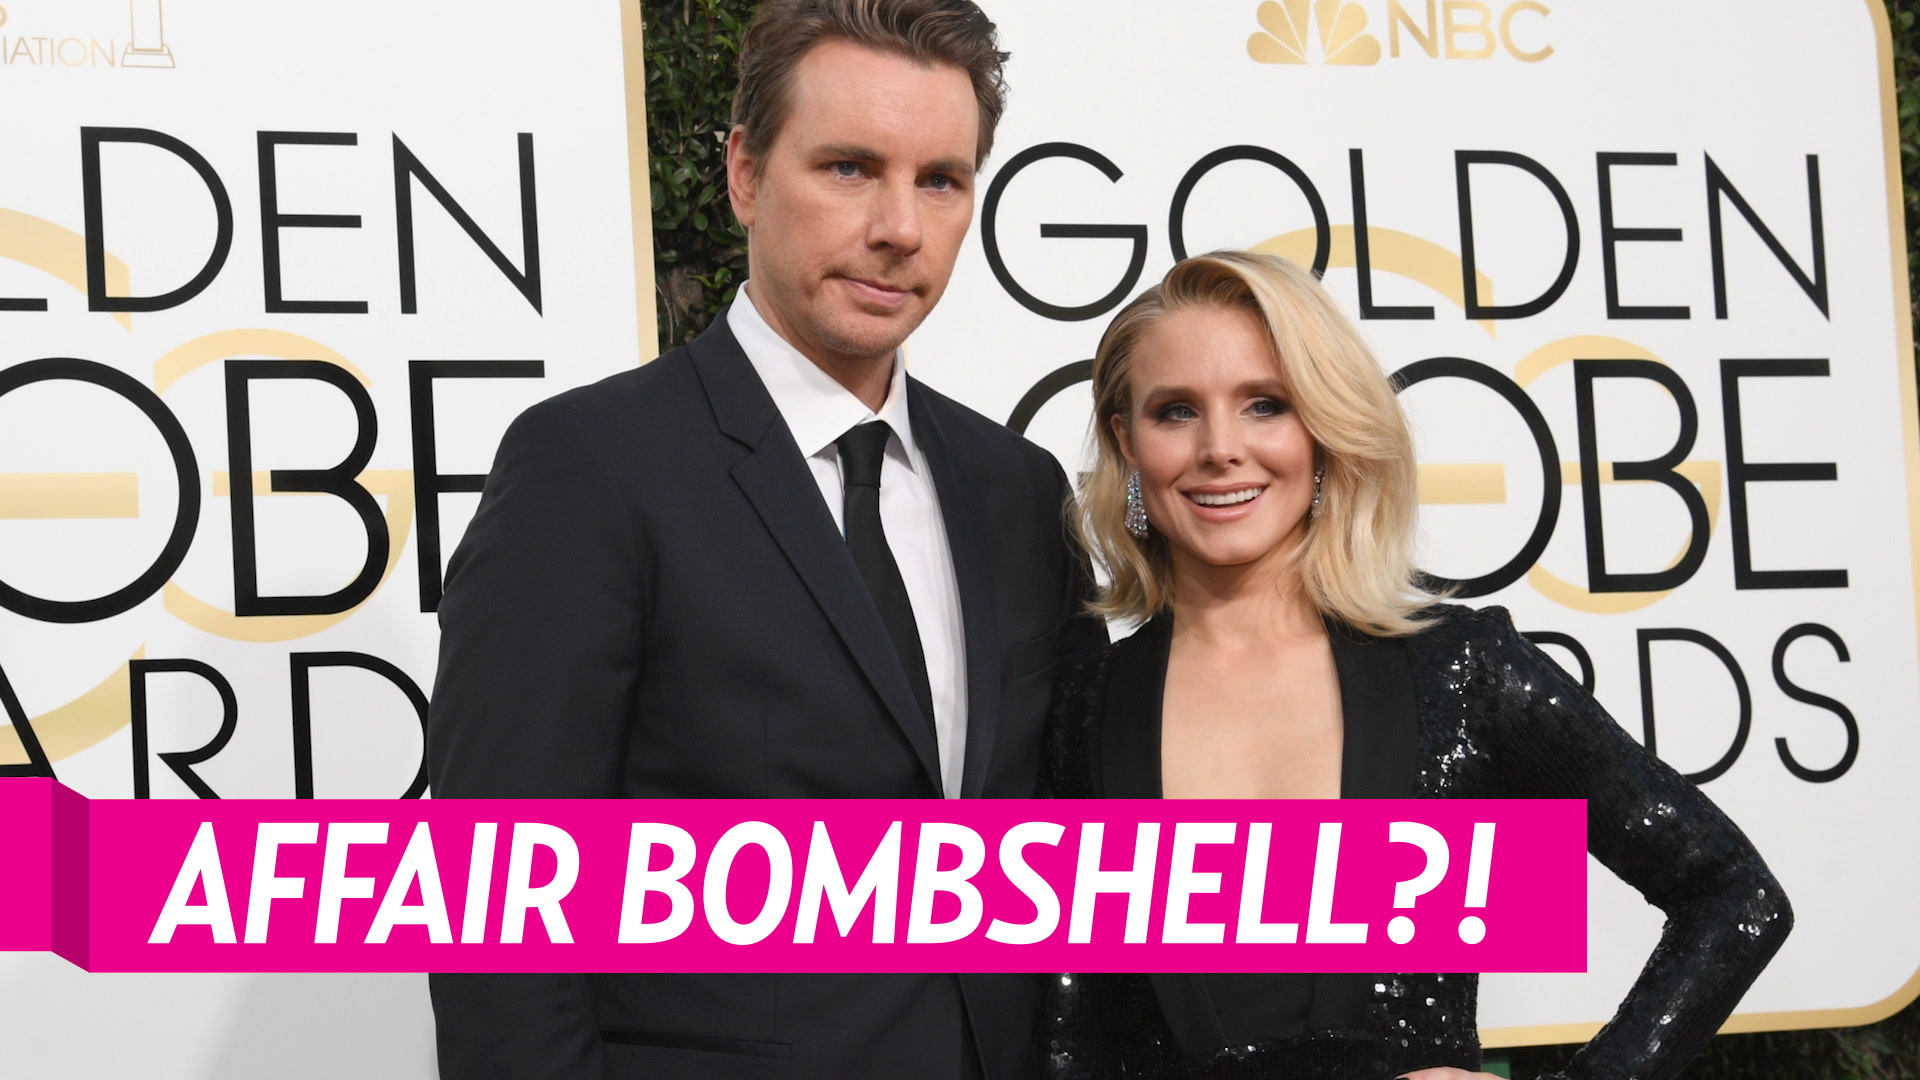 Julie Andrews' Granddaughter Claims She Had an Affair With Dax Shepard